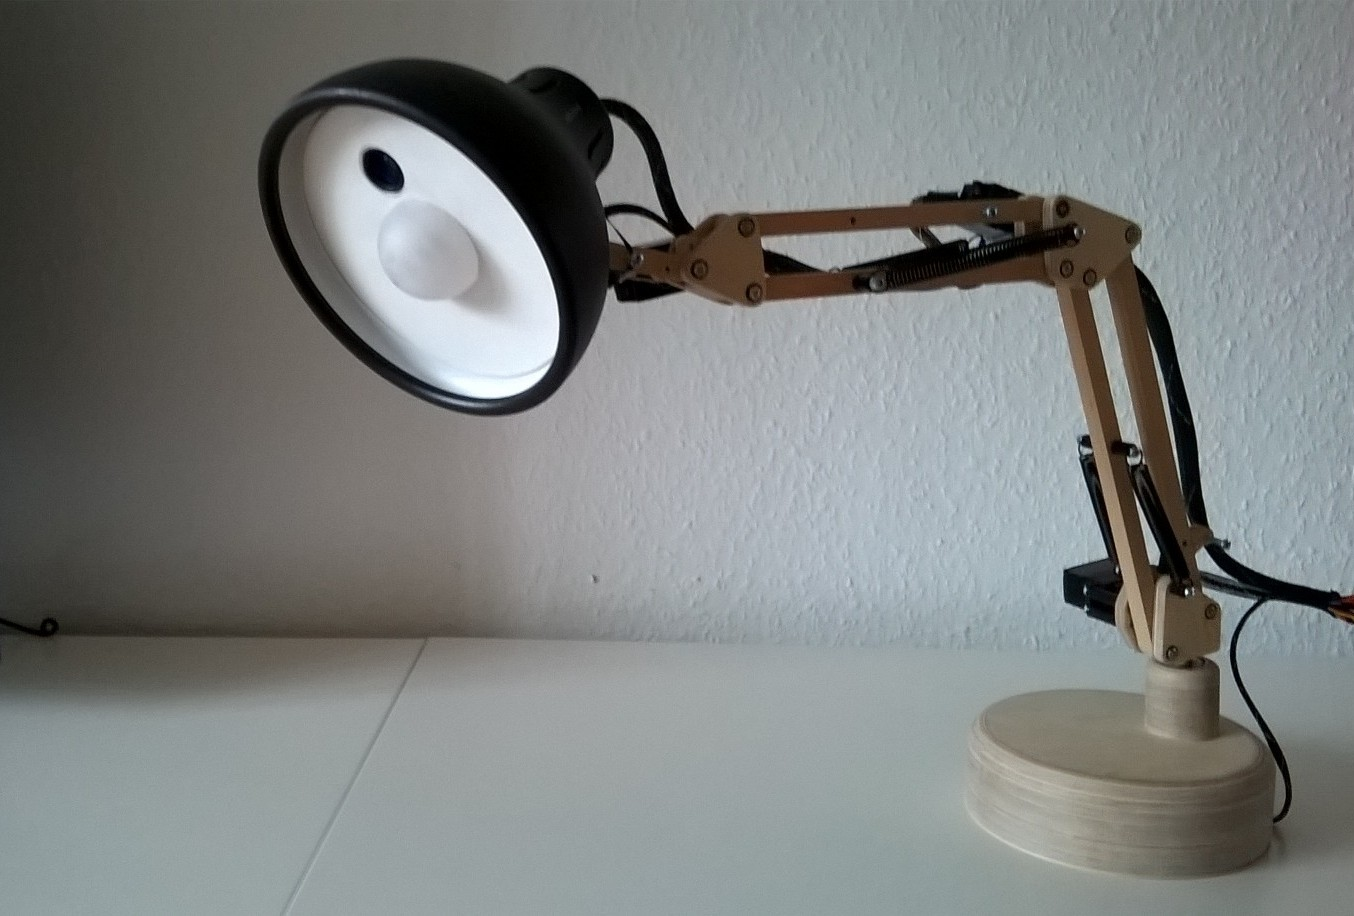 This Adorable Robotic Pixar Lamp Recognizes Your Face